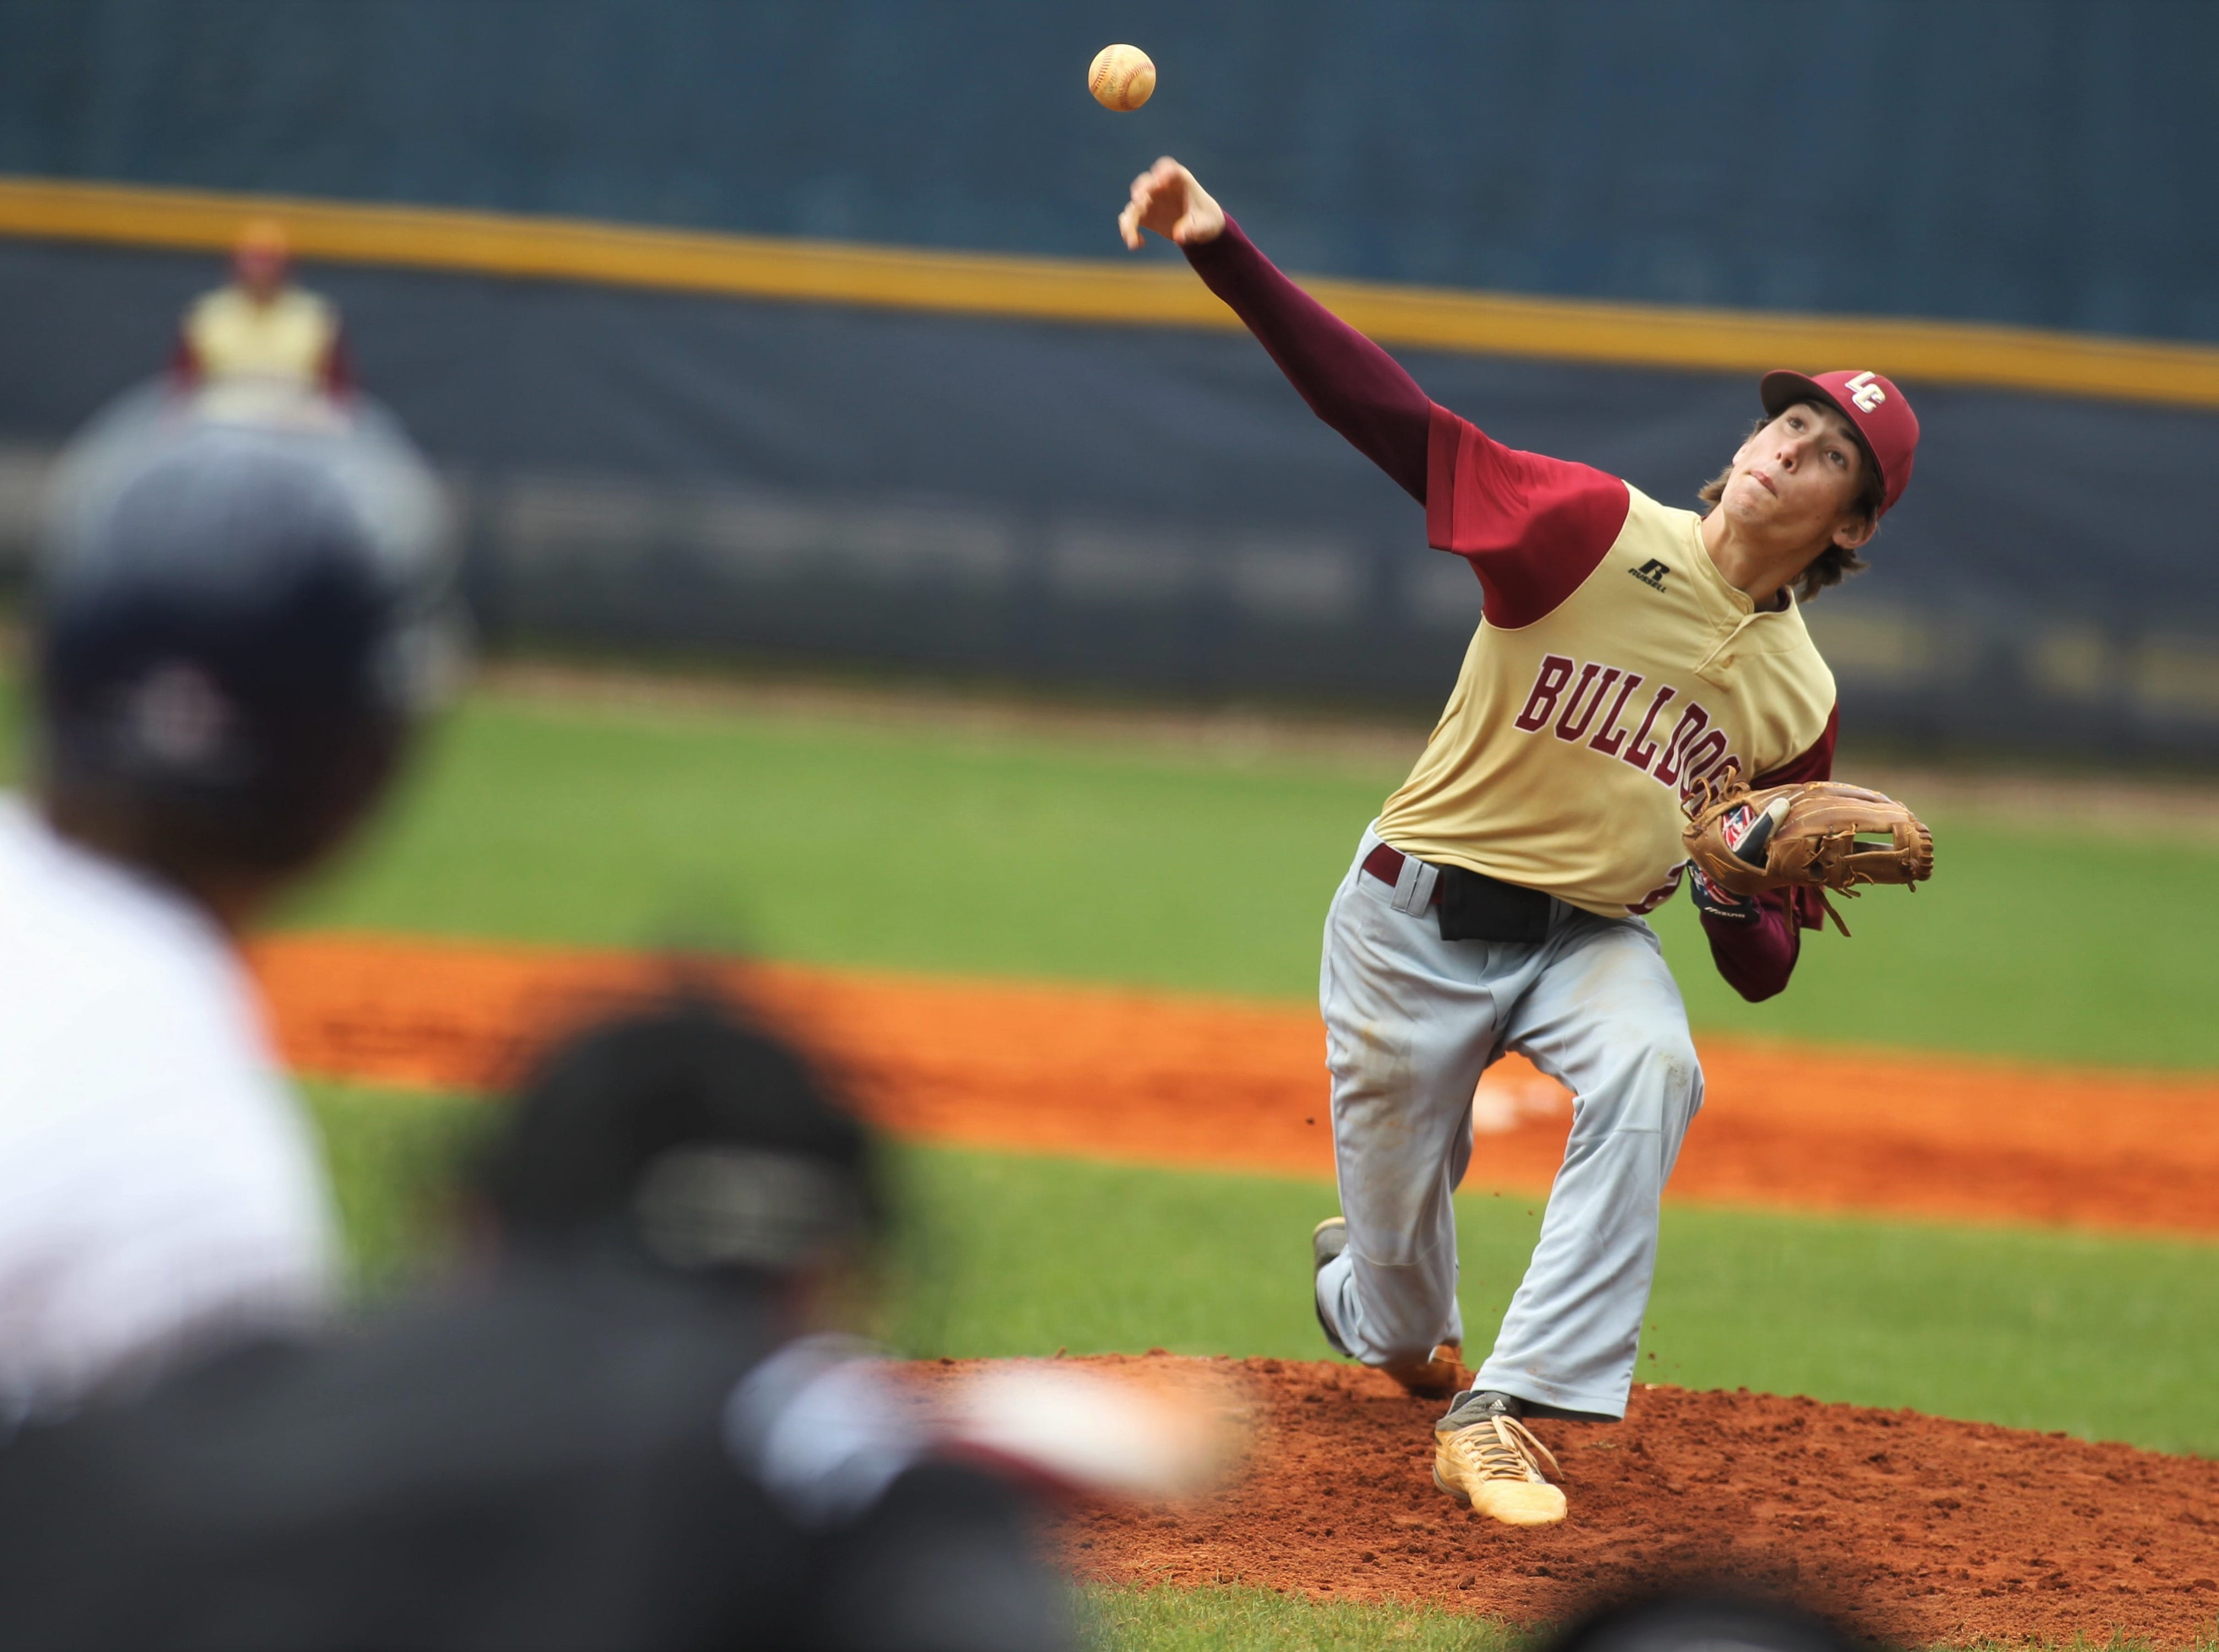 Liberty County pitcher Brent Fant was the winning pitcher as Liberty County's baseball team went on the road to beat Maclay 8-2 on Saturday, March 16, 2019. The Bulldogs played their first game following their head coach Corey Crum's tragic death six days ago.